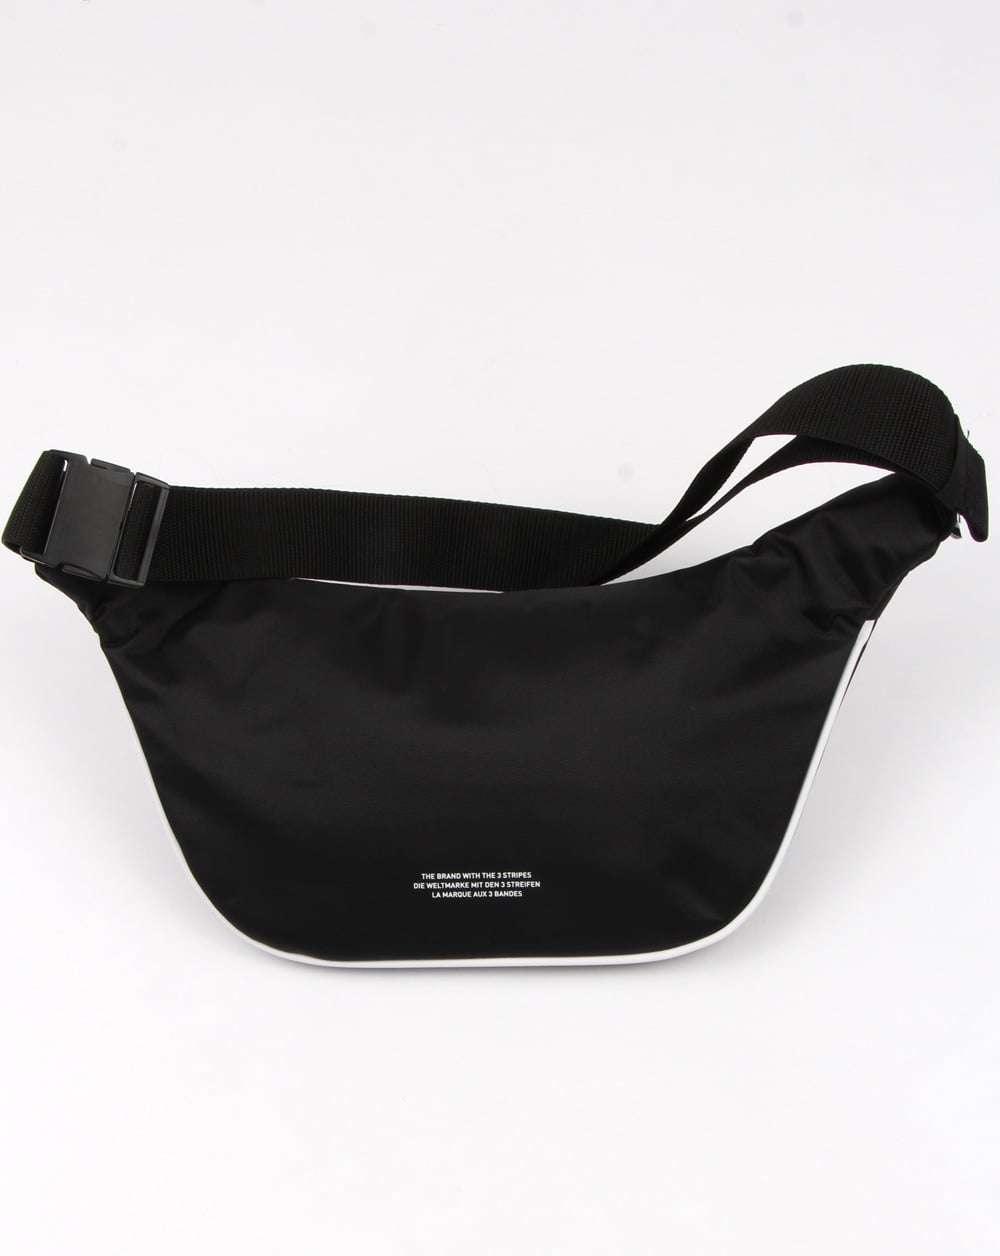 8aa33c09b43b Adidas Originals Adicolor Waist Bag Black